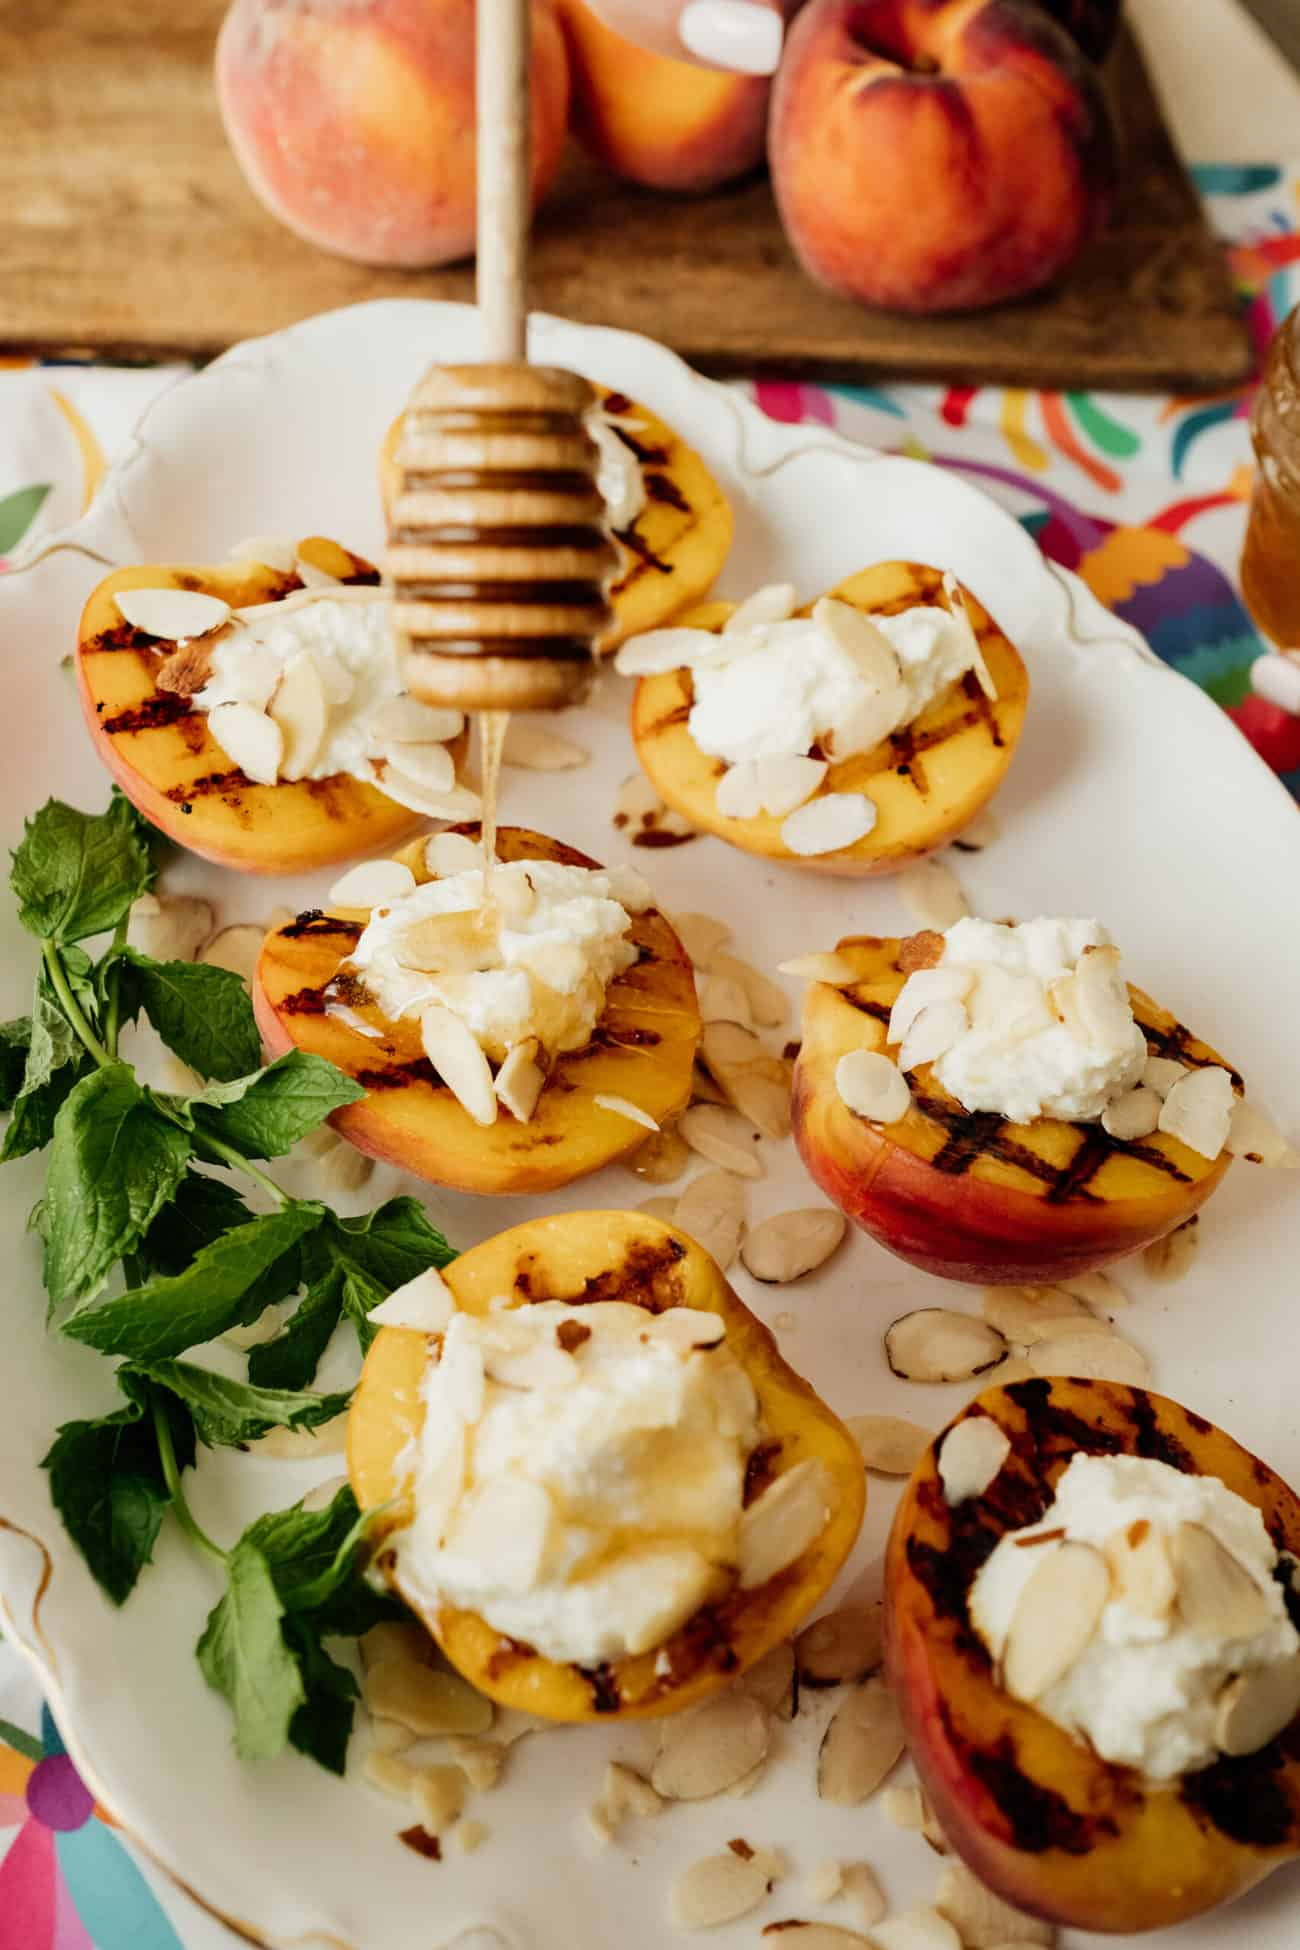 Duraznos al Grill con Requeson (Grilled Peaches with Ricotta Cheese) on a white platter drizzled with honey and sprinkled with sliced almonds